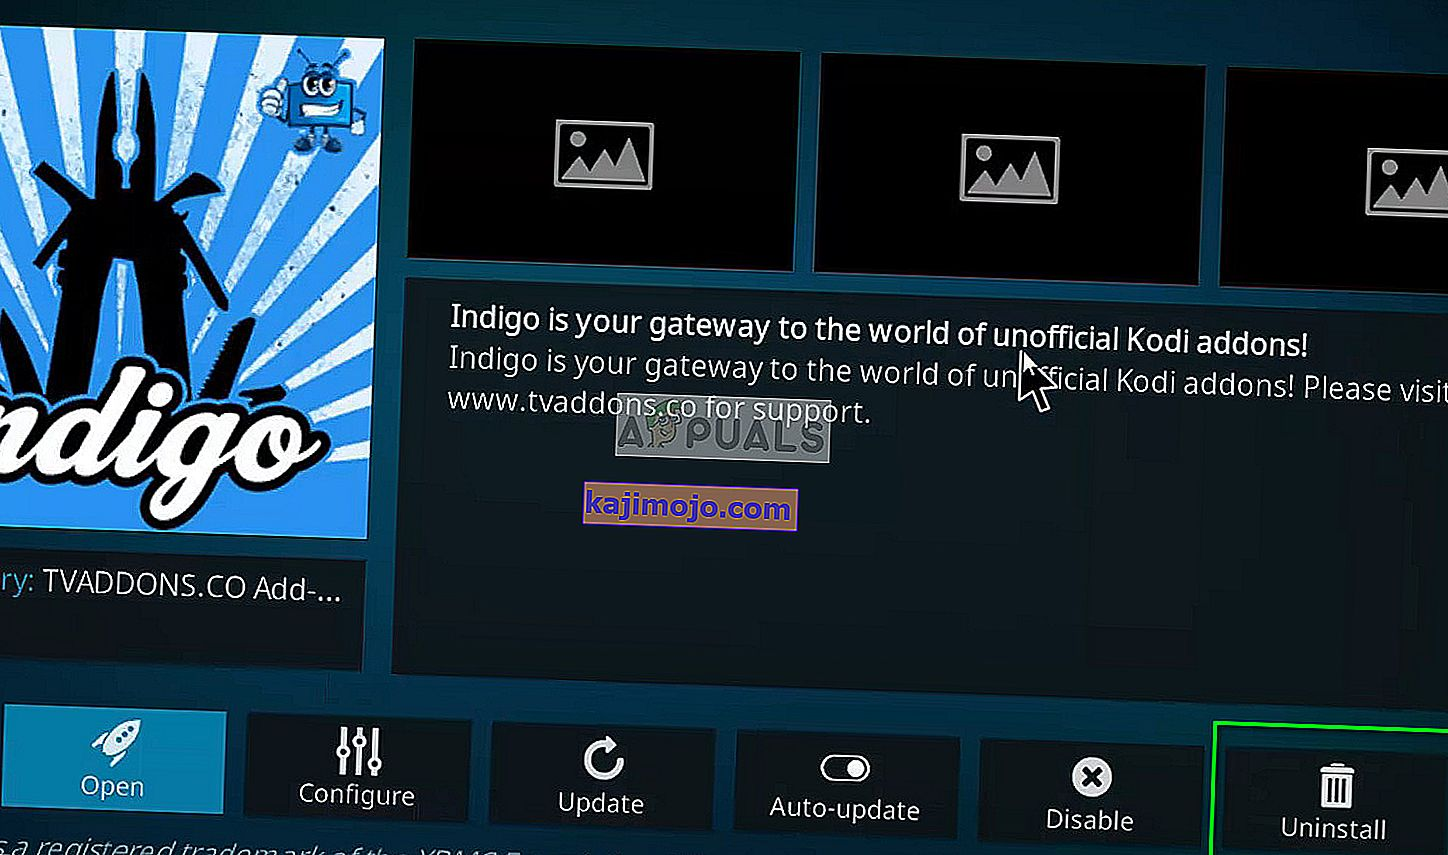 Uninstall option for add-on Indigo on Kodi